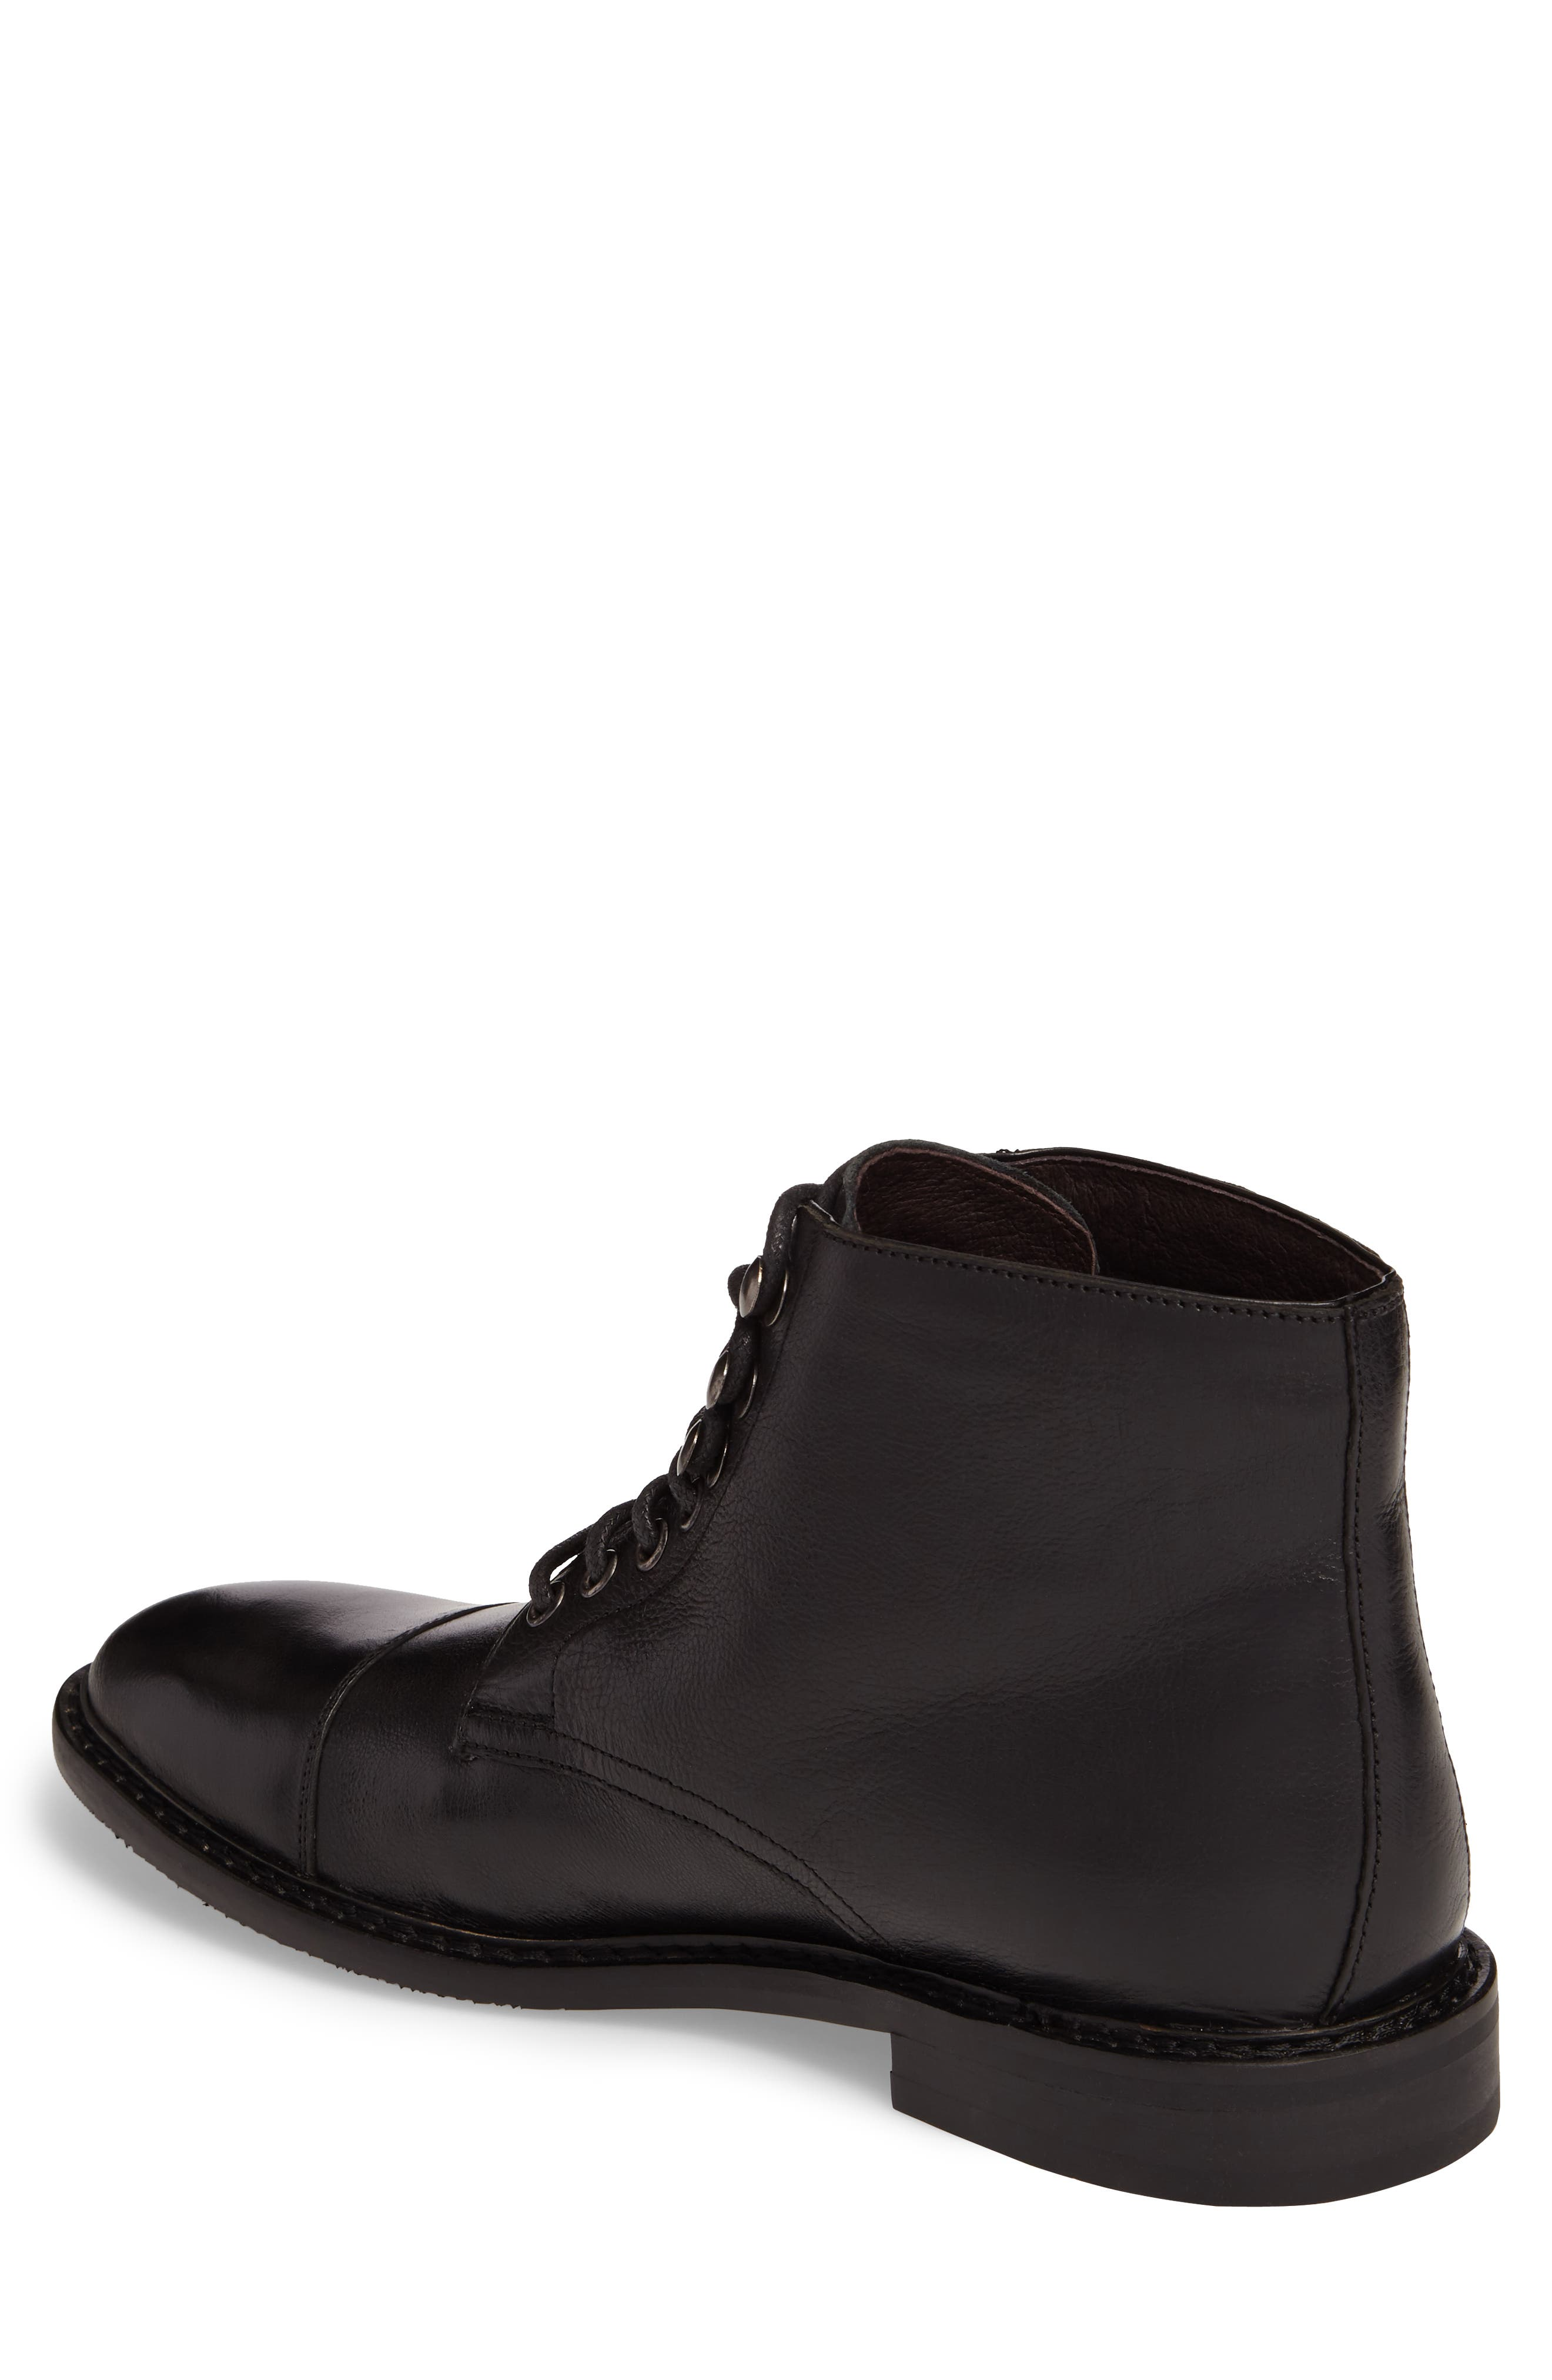 Piston Cap Toe Boot,                             Alternate thumbnail 2, color,                             001